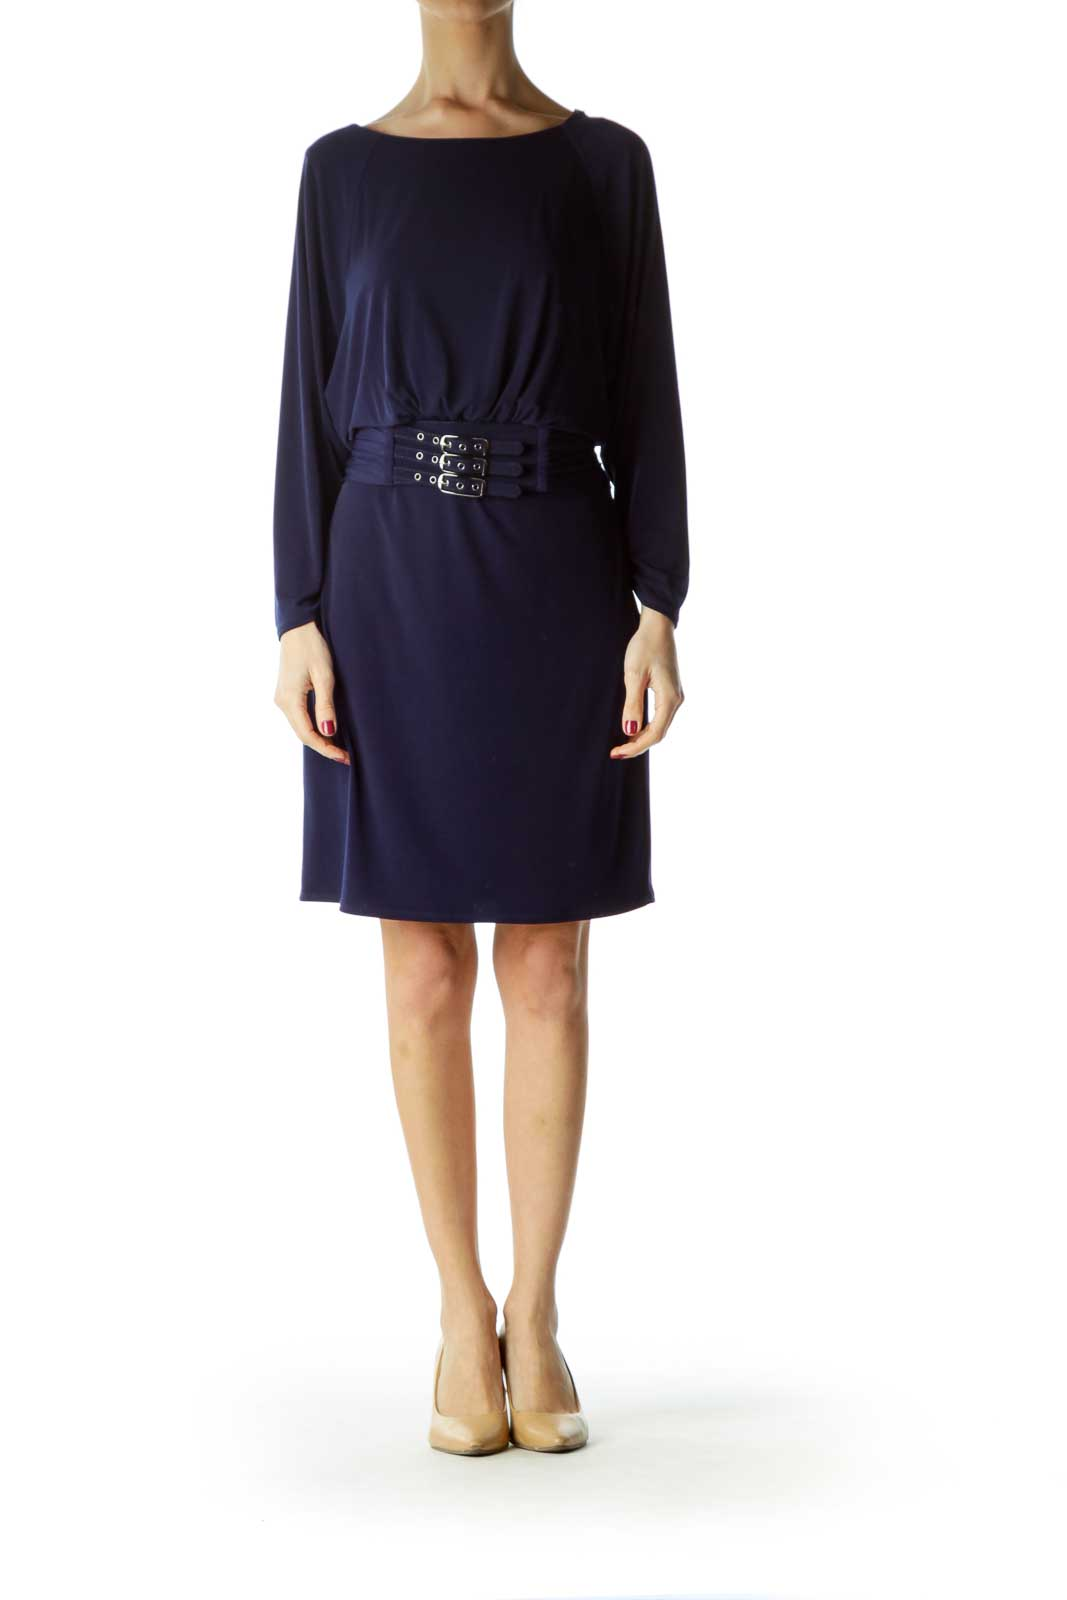 Blue Belted with Buckles Work Dress